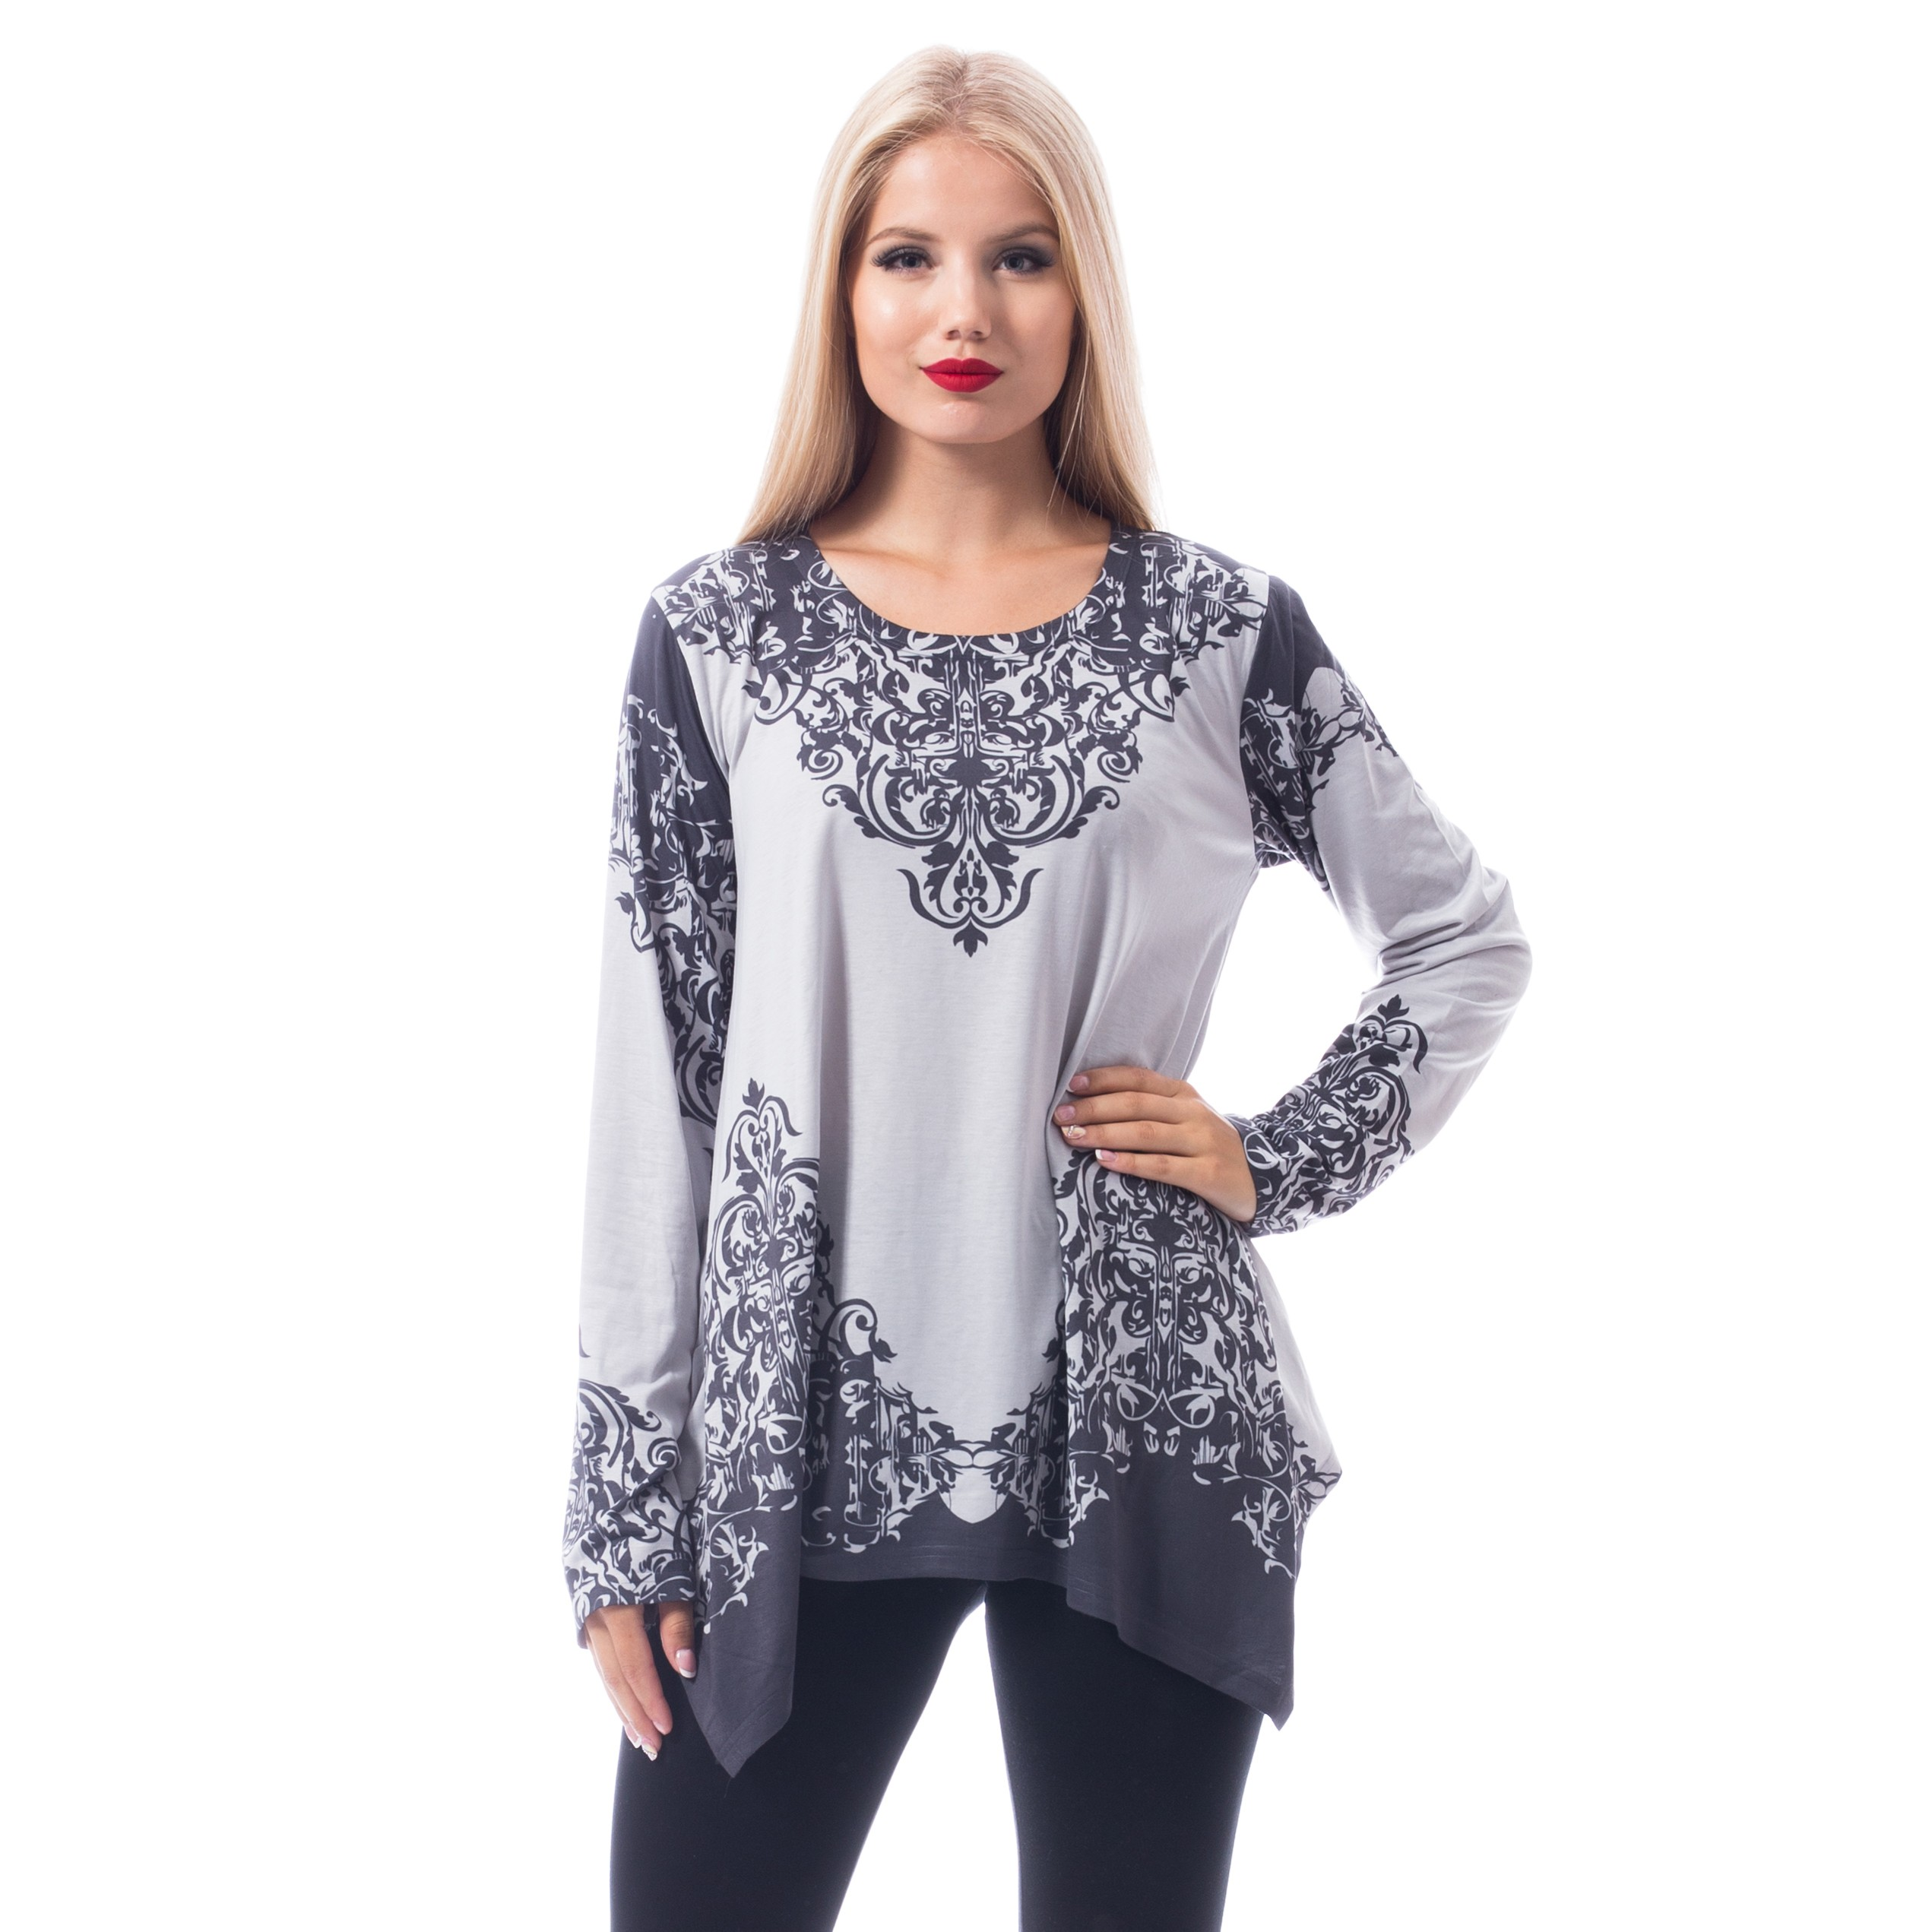 INNOCENT LIFESTYLE - Amala Top Ladies Grey *a1